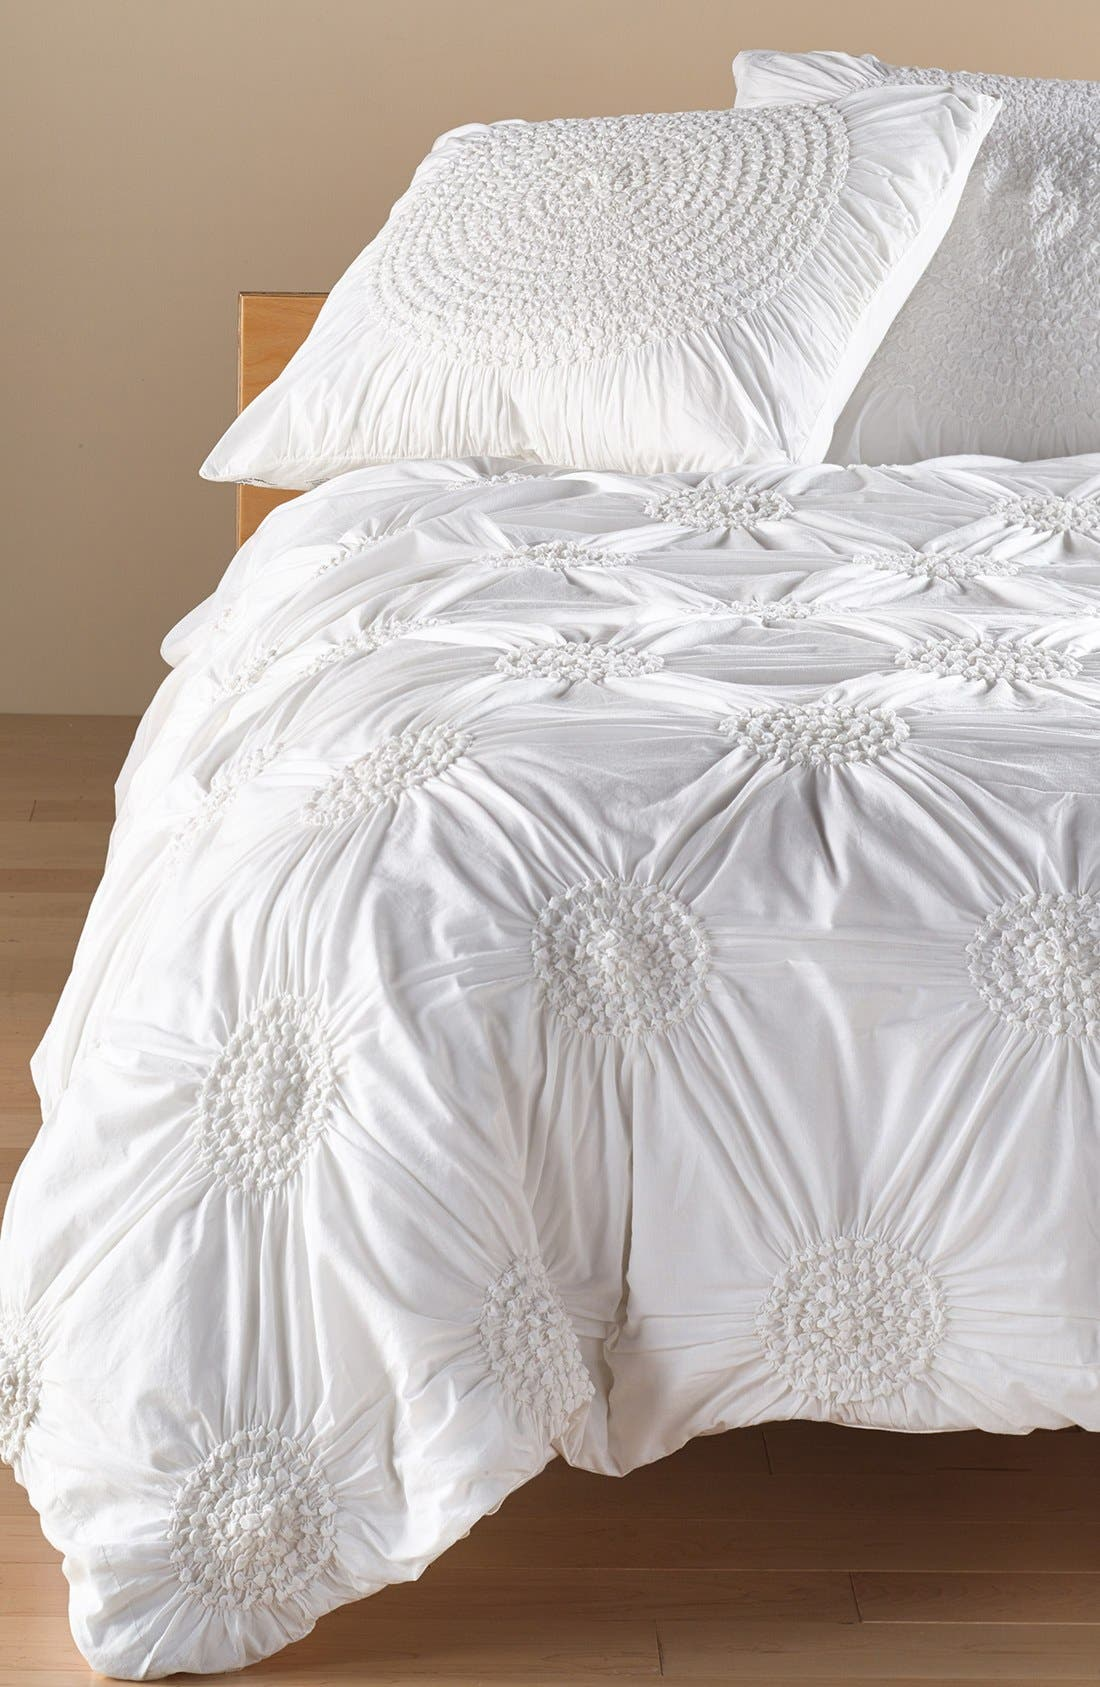 Nordstrom at Home 'Chloe' Duvet Cover